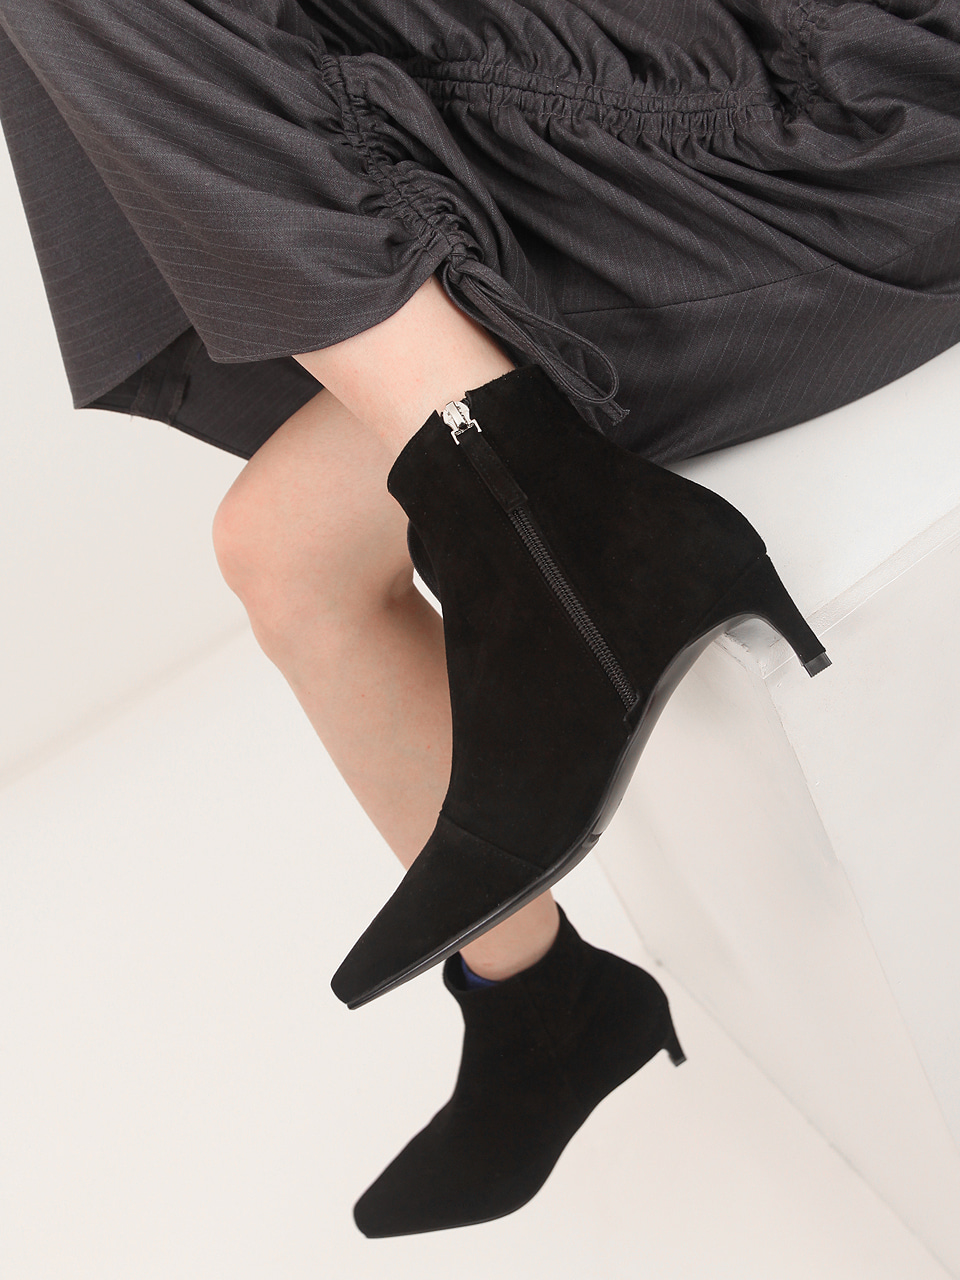 Mrc047 Soft Ankle Boots (Black Suede)